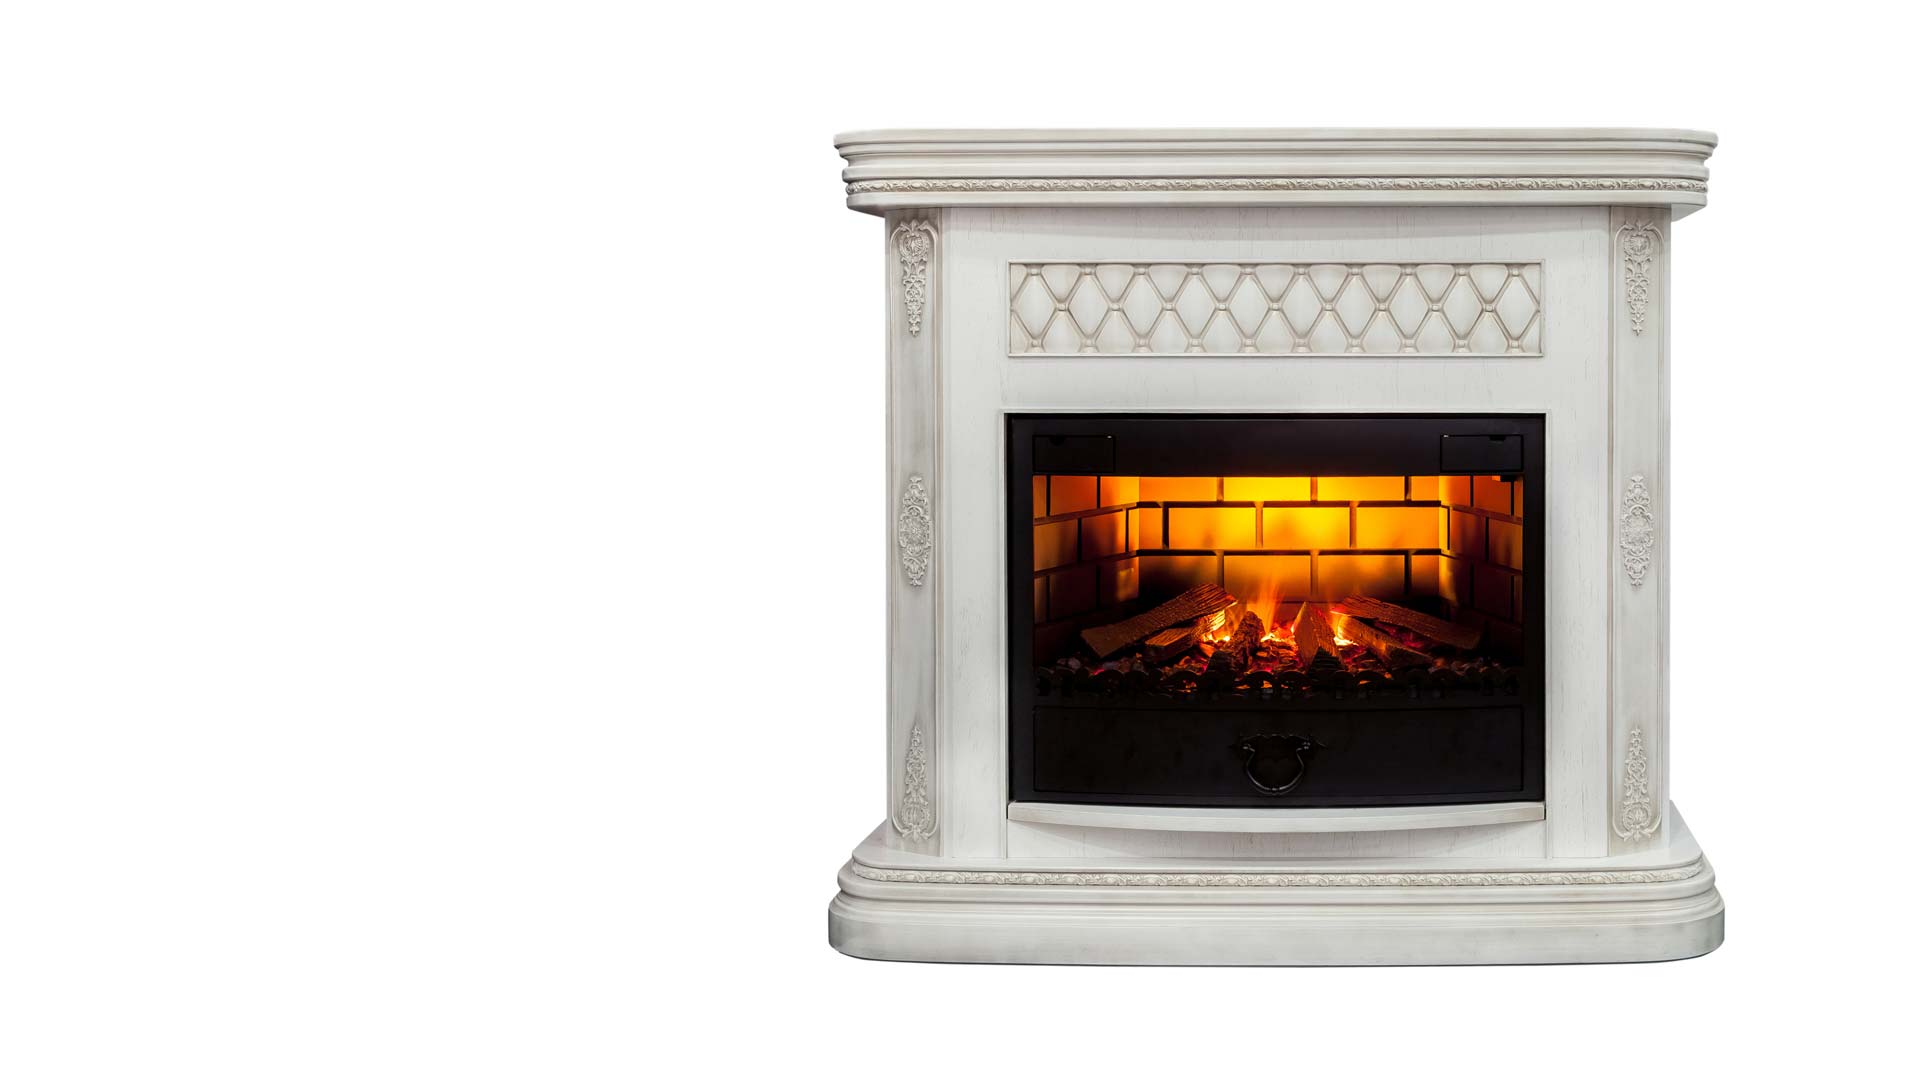 A Cozy Fireplace  Fireplace Store in Naperville  Crest Hill and New Lenox